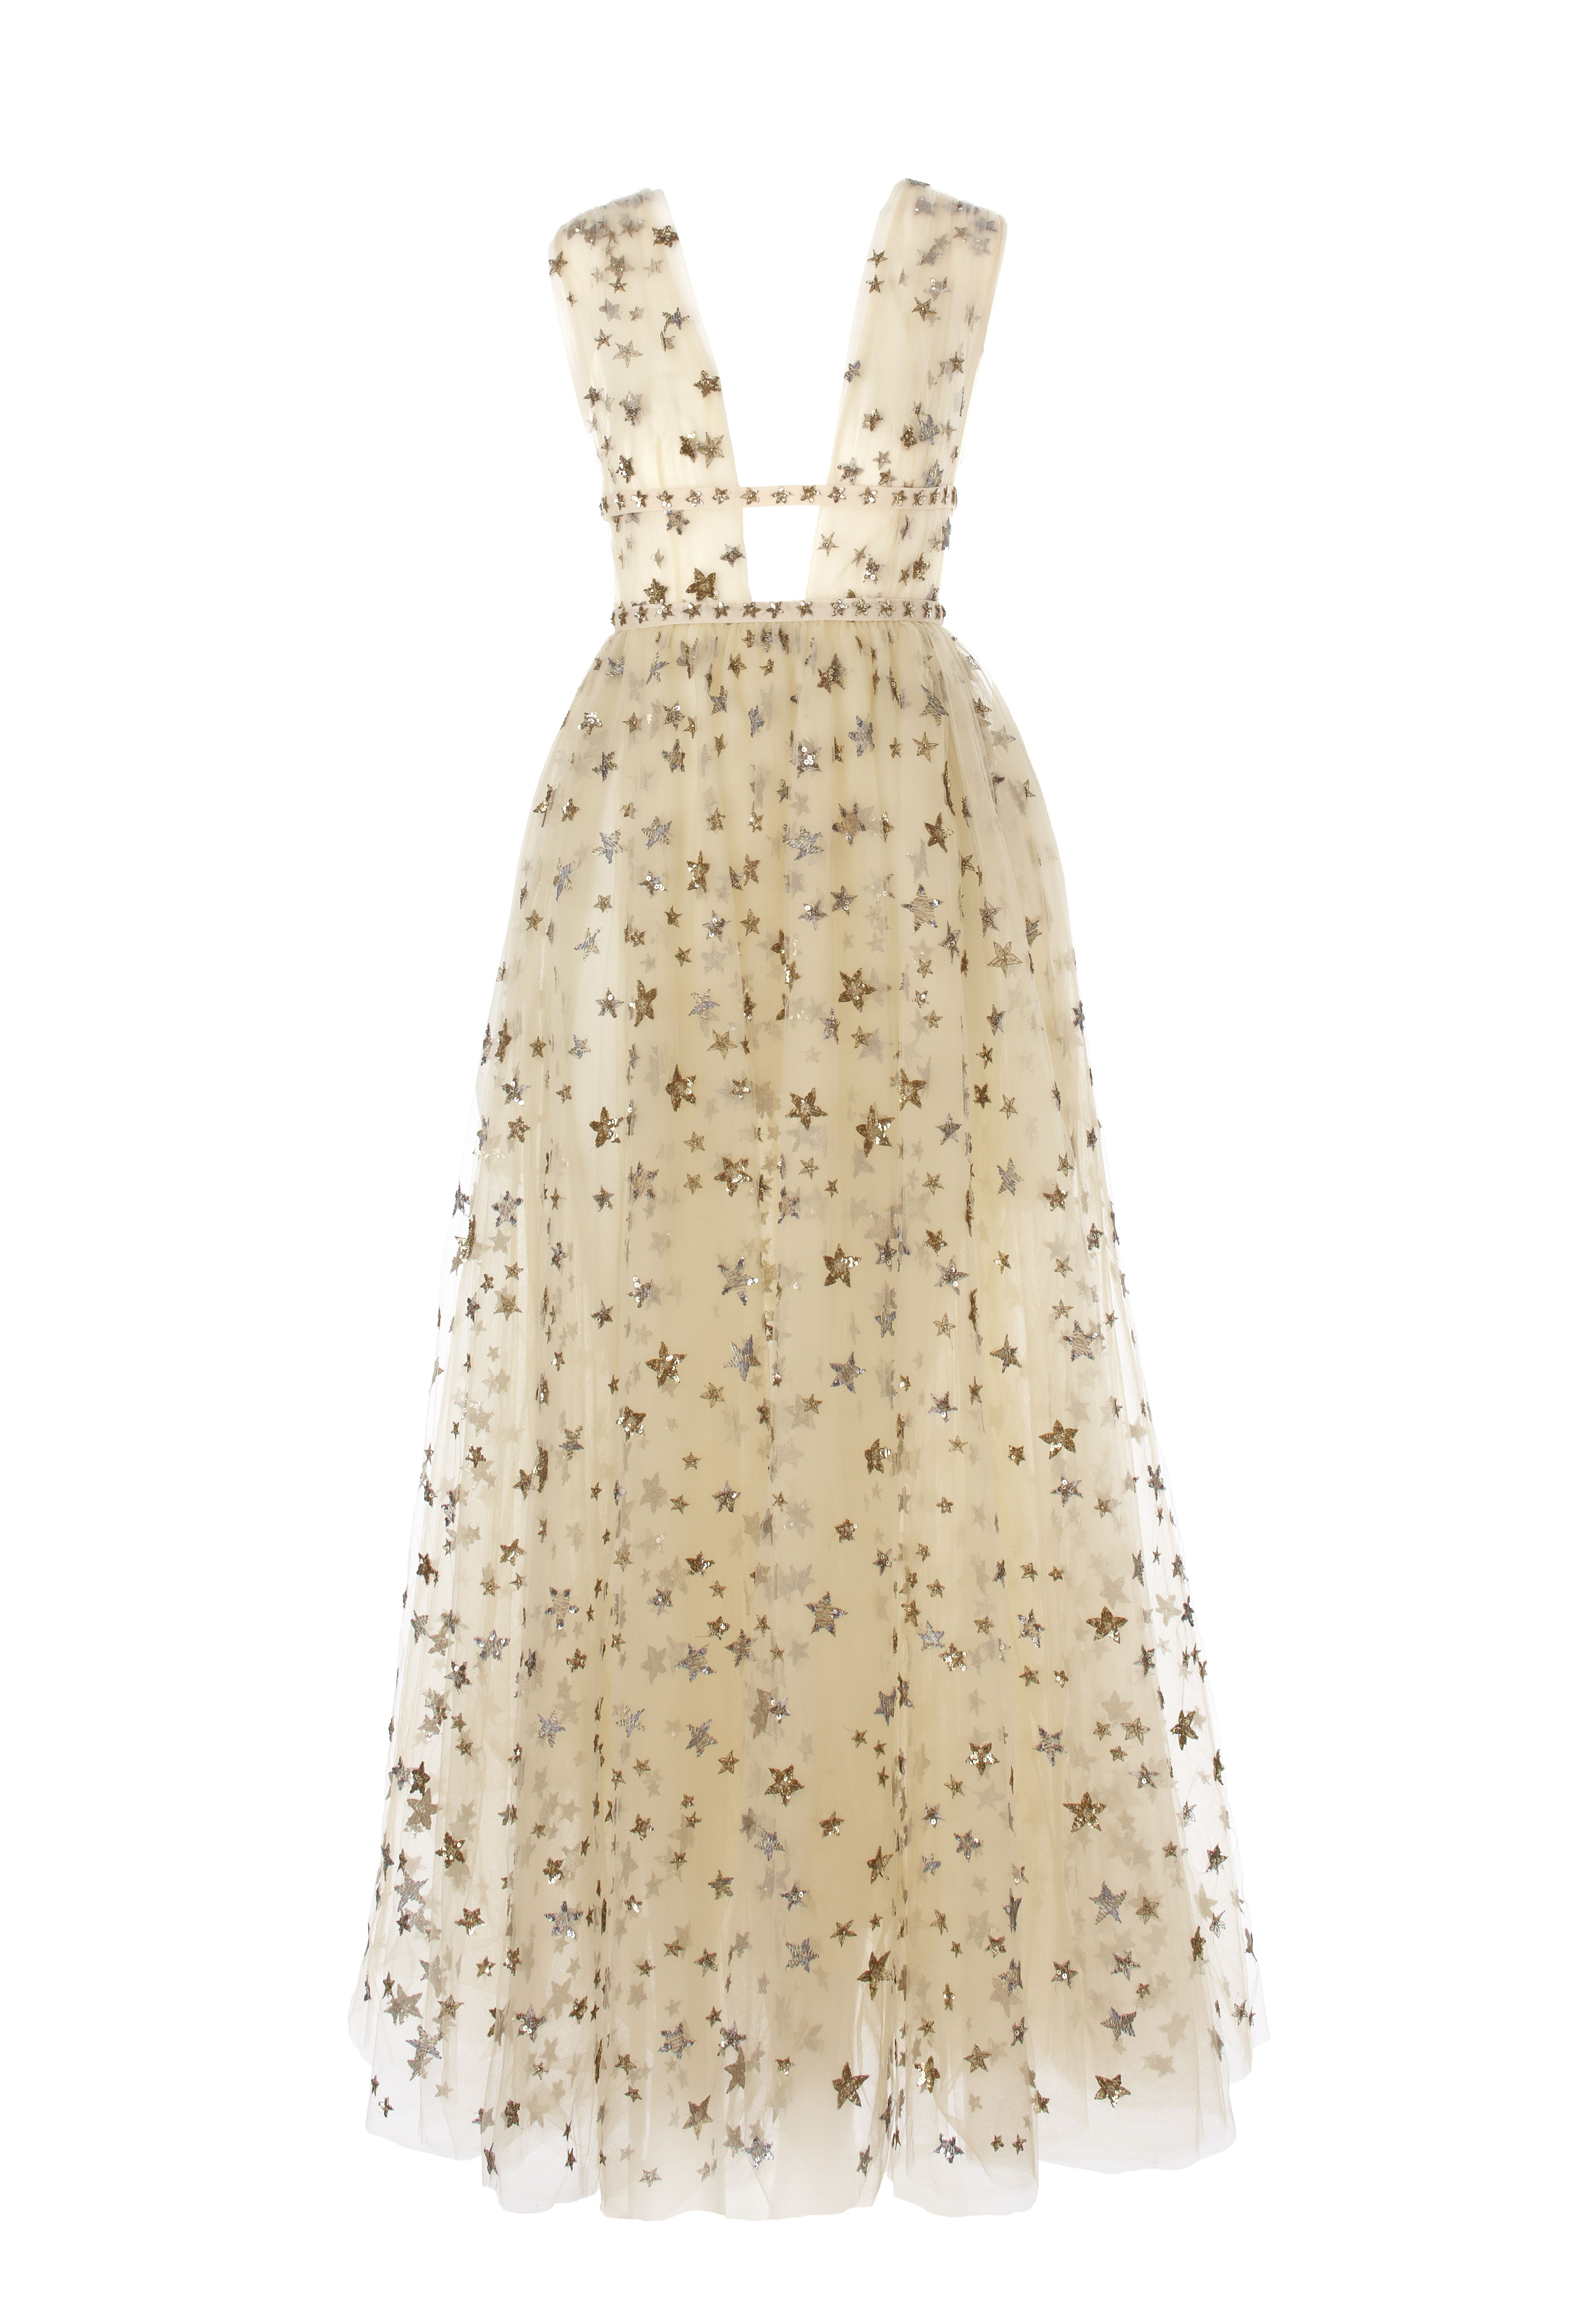 4c14ff01c9c3 Valentino. Hello dress of my dreams. I'd wear you to the ball, to the  supermarket, to the bank, to work, to.